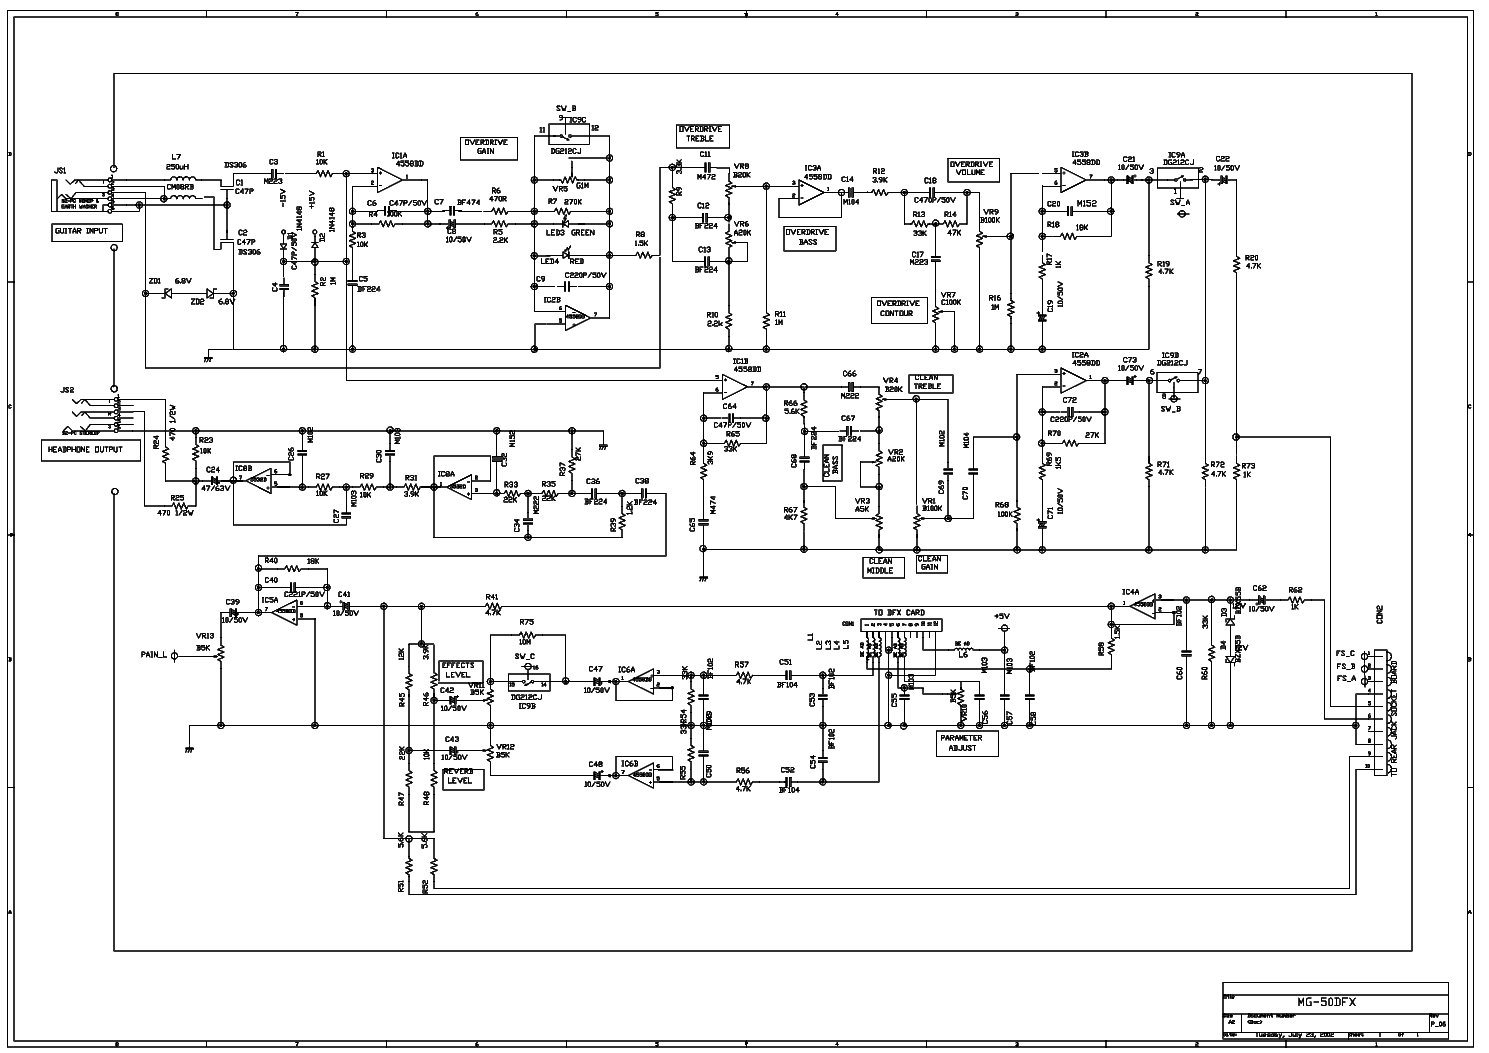 DIAGRAM] Marshall Mg50dfx Wiring Diagram FULL Version HD Quality Wiring  Diagram - DUCTDIAGRAM.EYEPOWER.ITductdiagram.eyepower.it